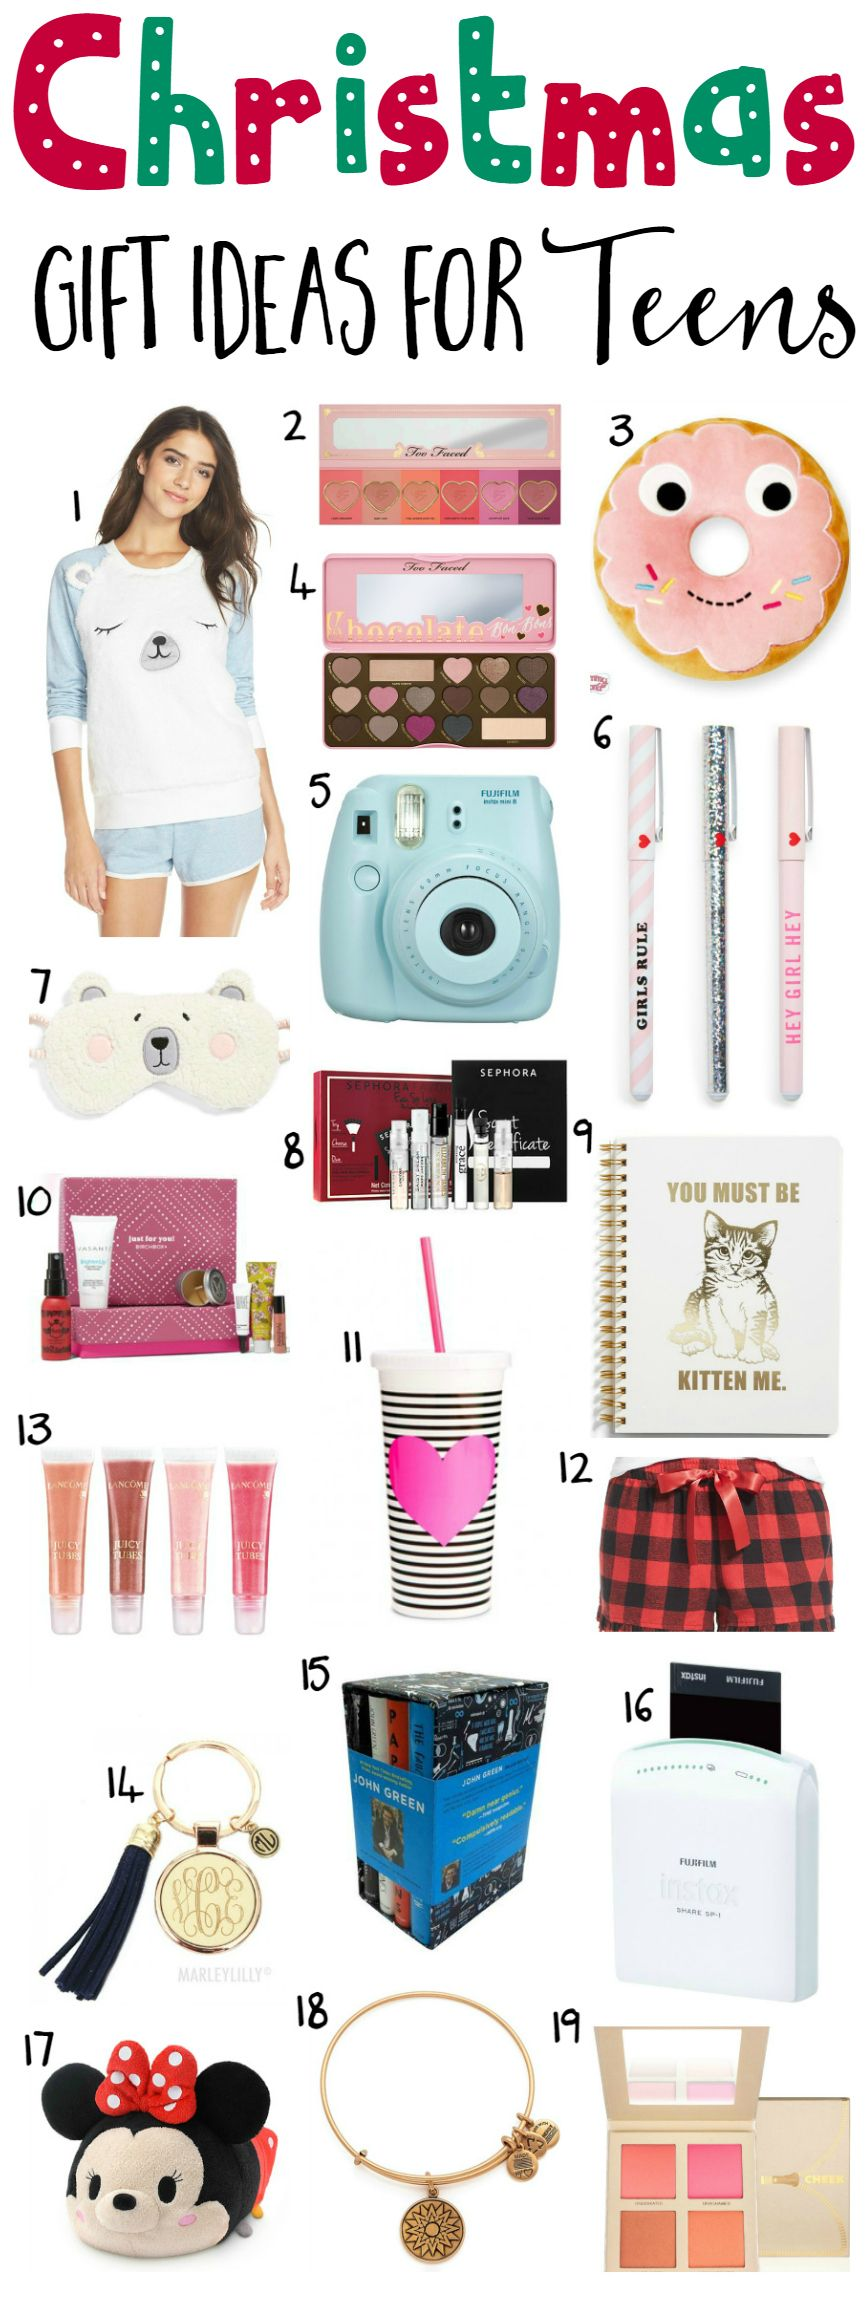 Best Christmas Gift Ideas for Teens | GIFT GUIDE - For Teens ...